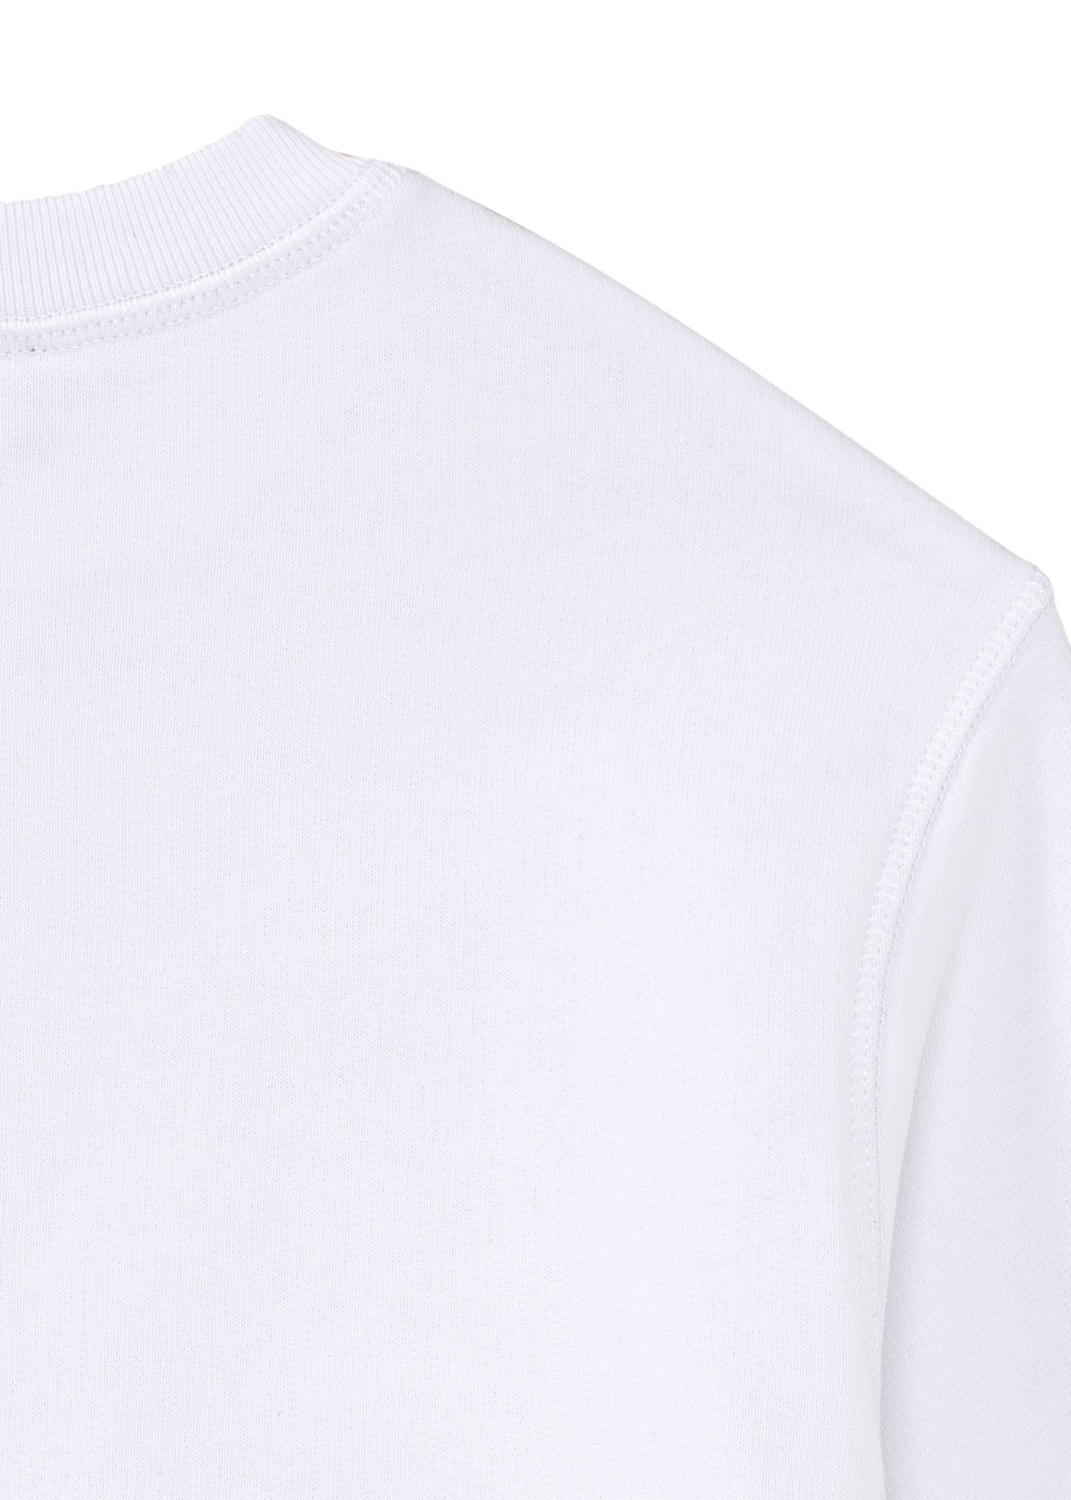 RELAX-ICON SWEAT-SHIRT image number 3